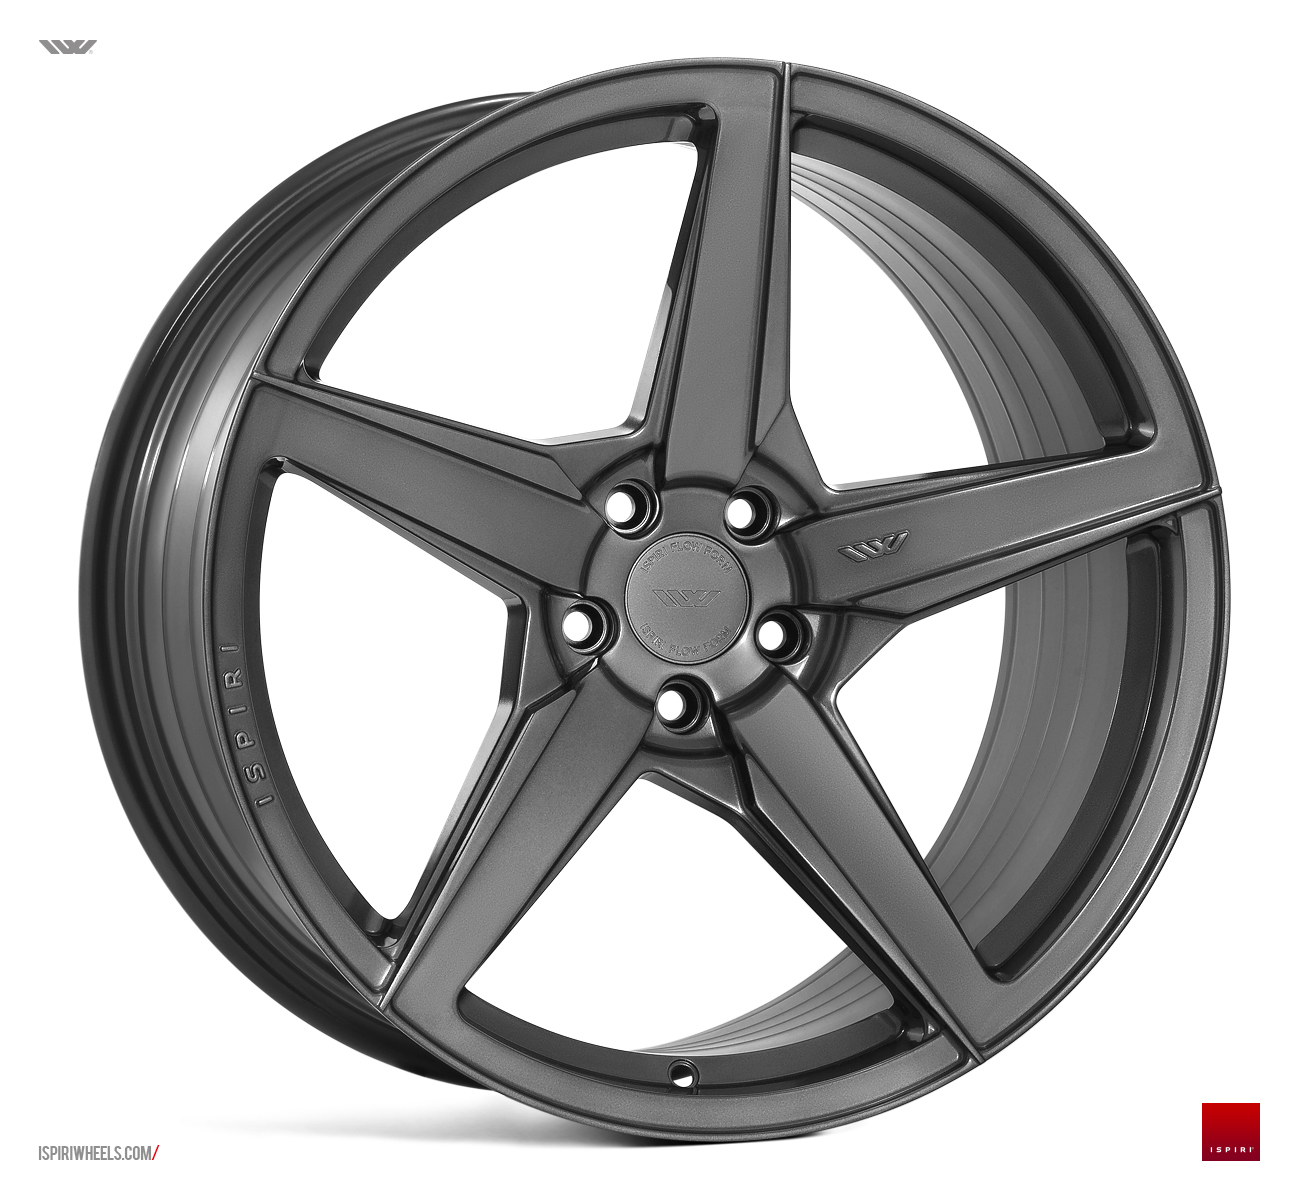 "NEW 20"" ISPIRI FFR5 5 SPOKE ALLOY WHEELS IN CARBON GRAPHITE, VARIOUS FITMENTS AVAILABLE"